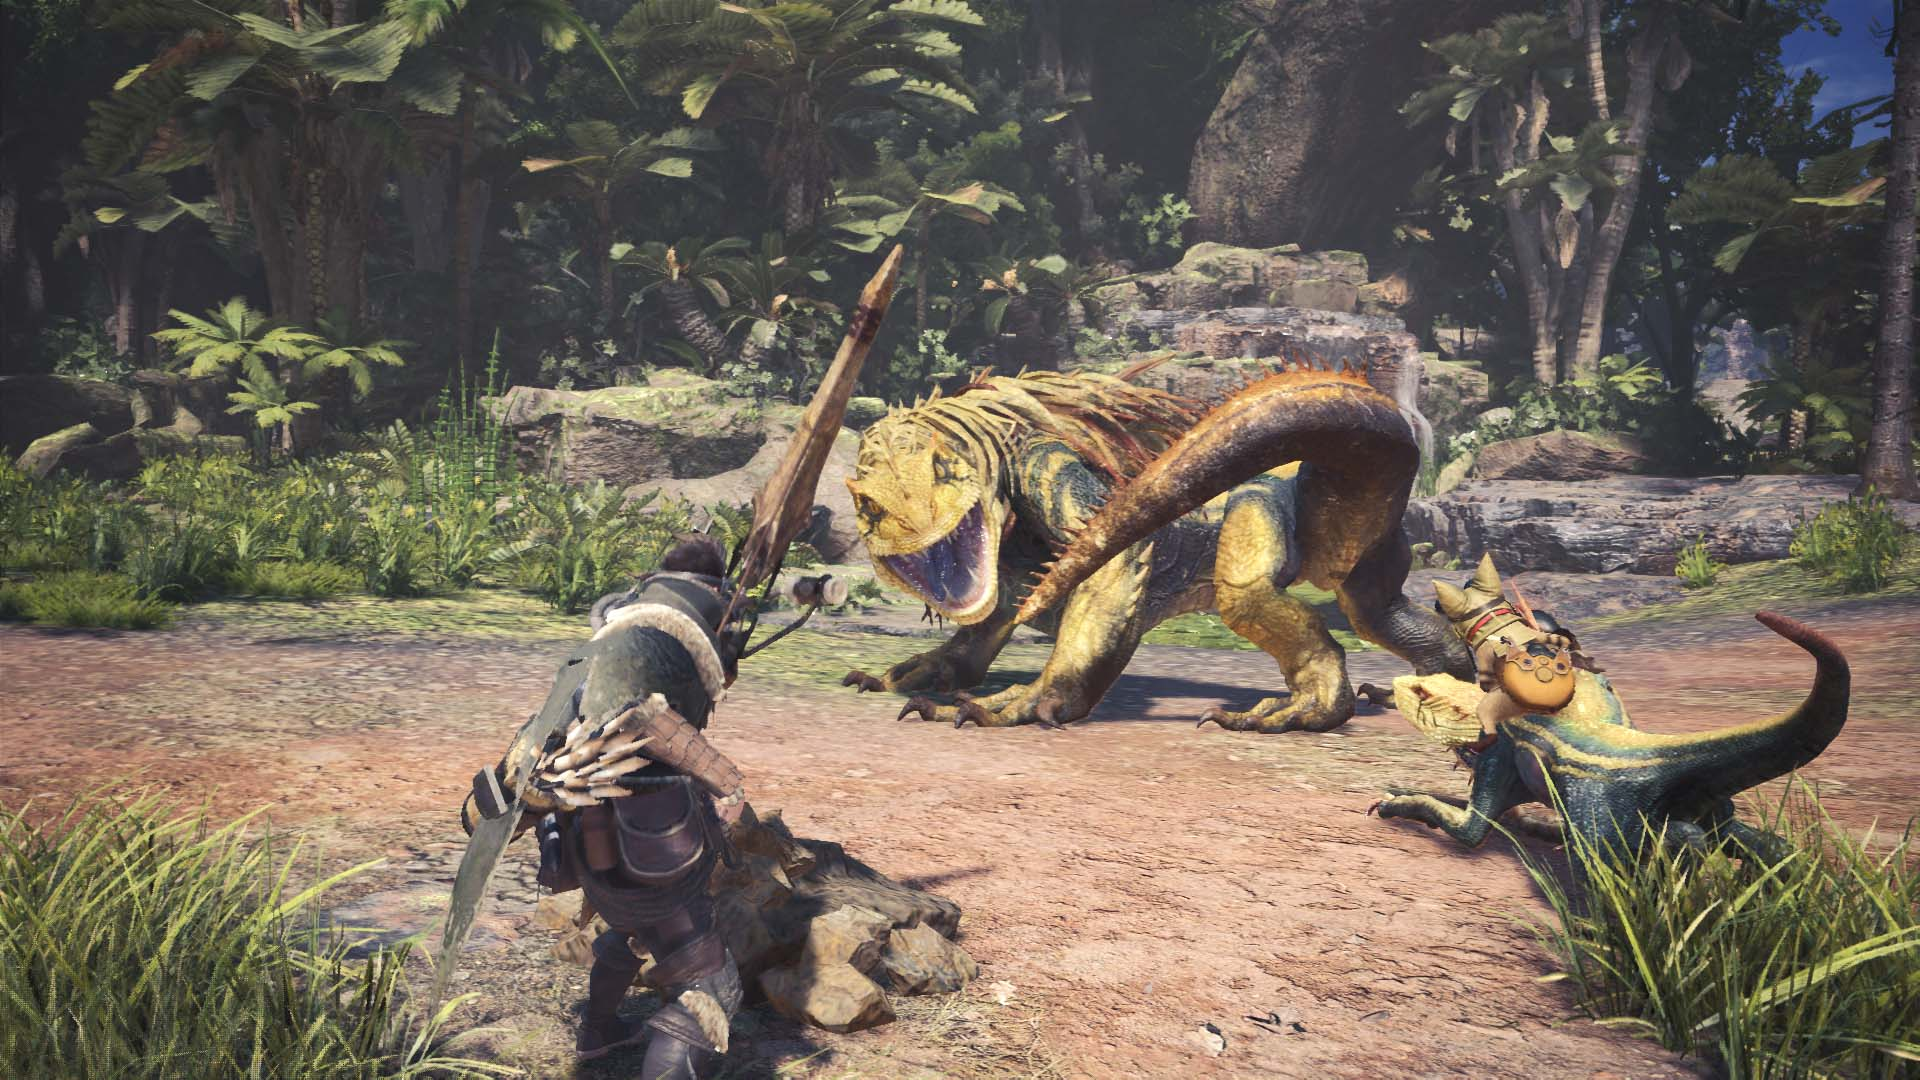 Monster Hunter World Comes Packaged Free With This Sweet Xbox One X Deal